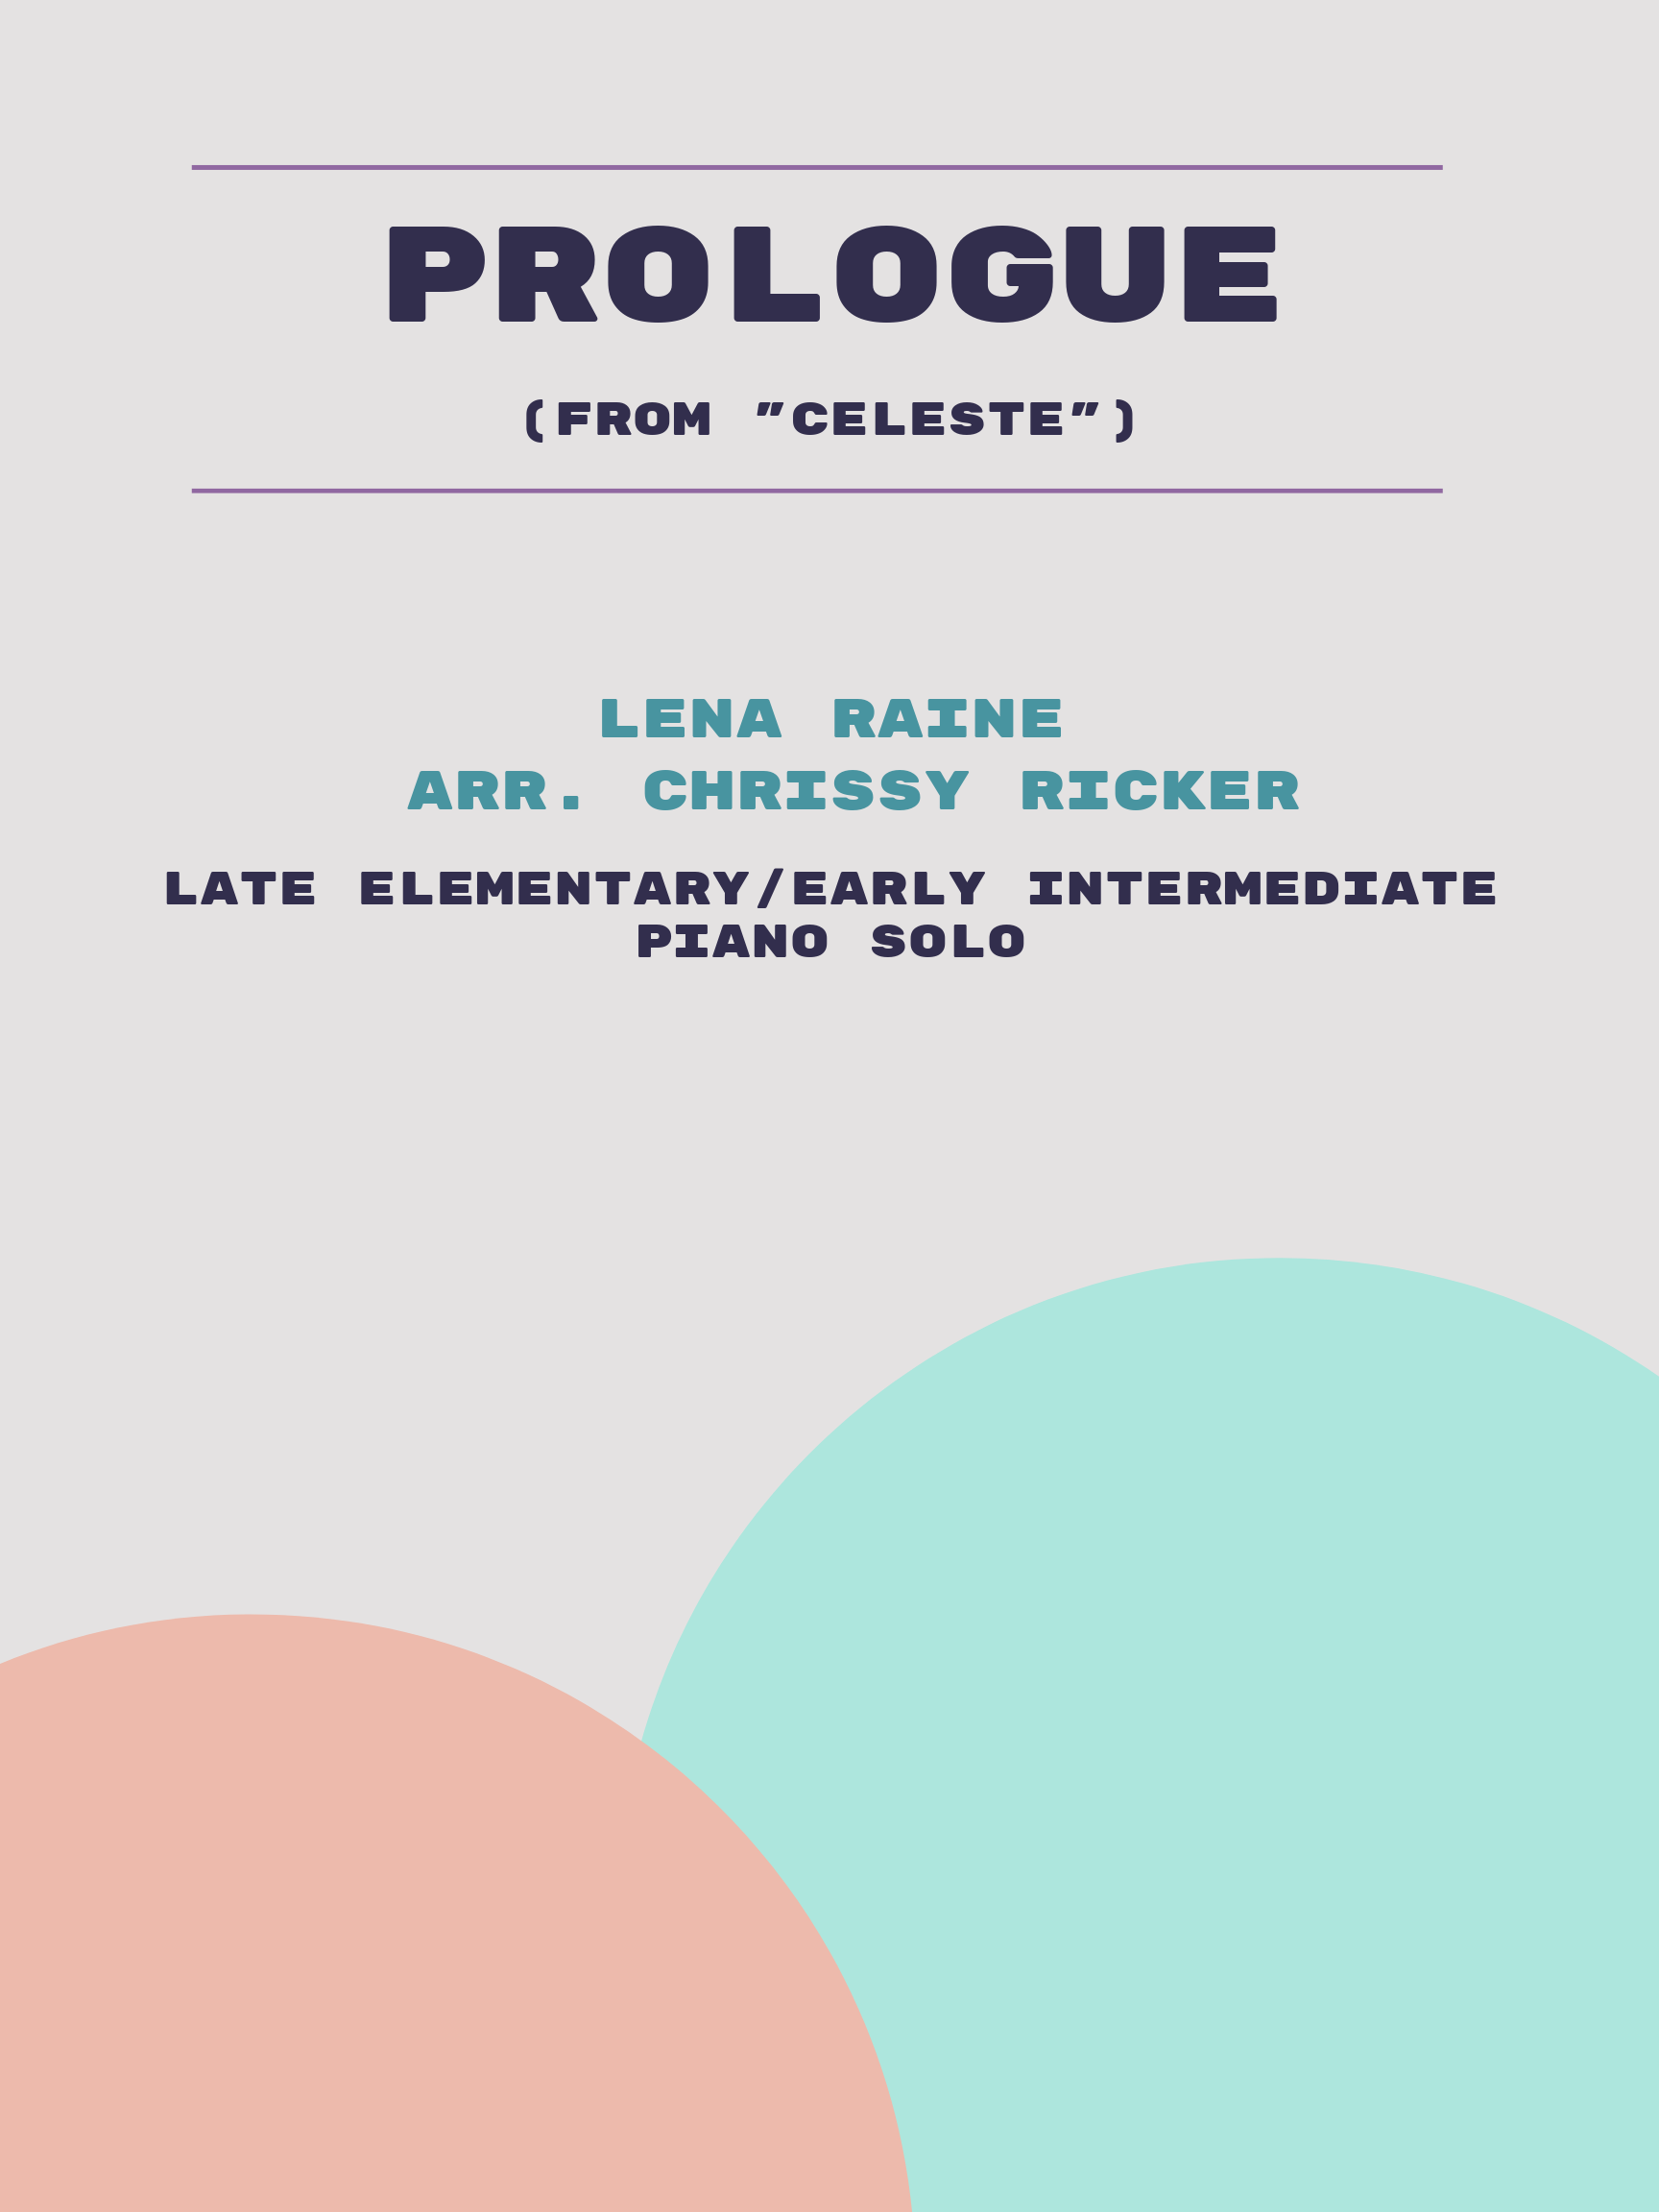 Prologue by Lena Raine